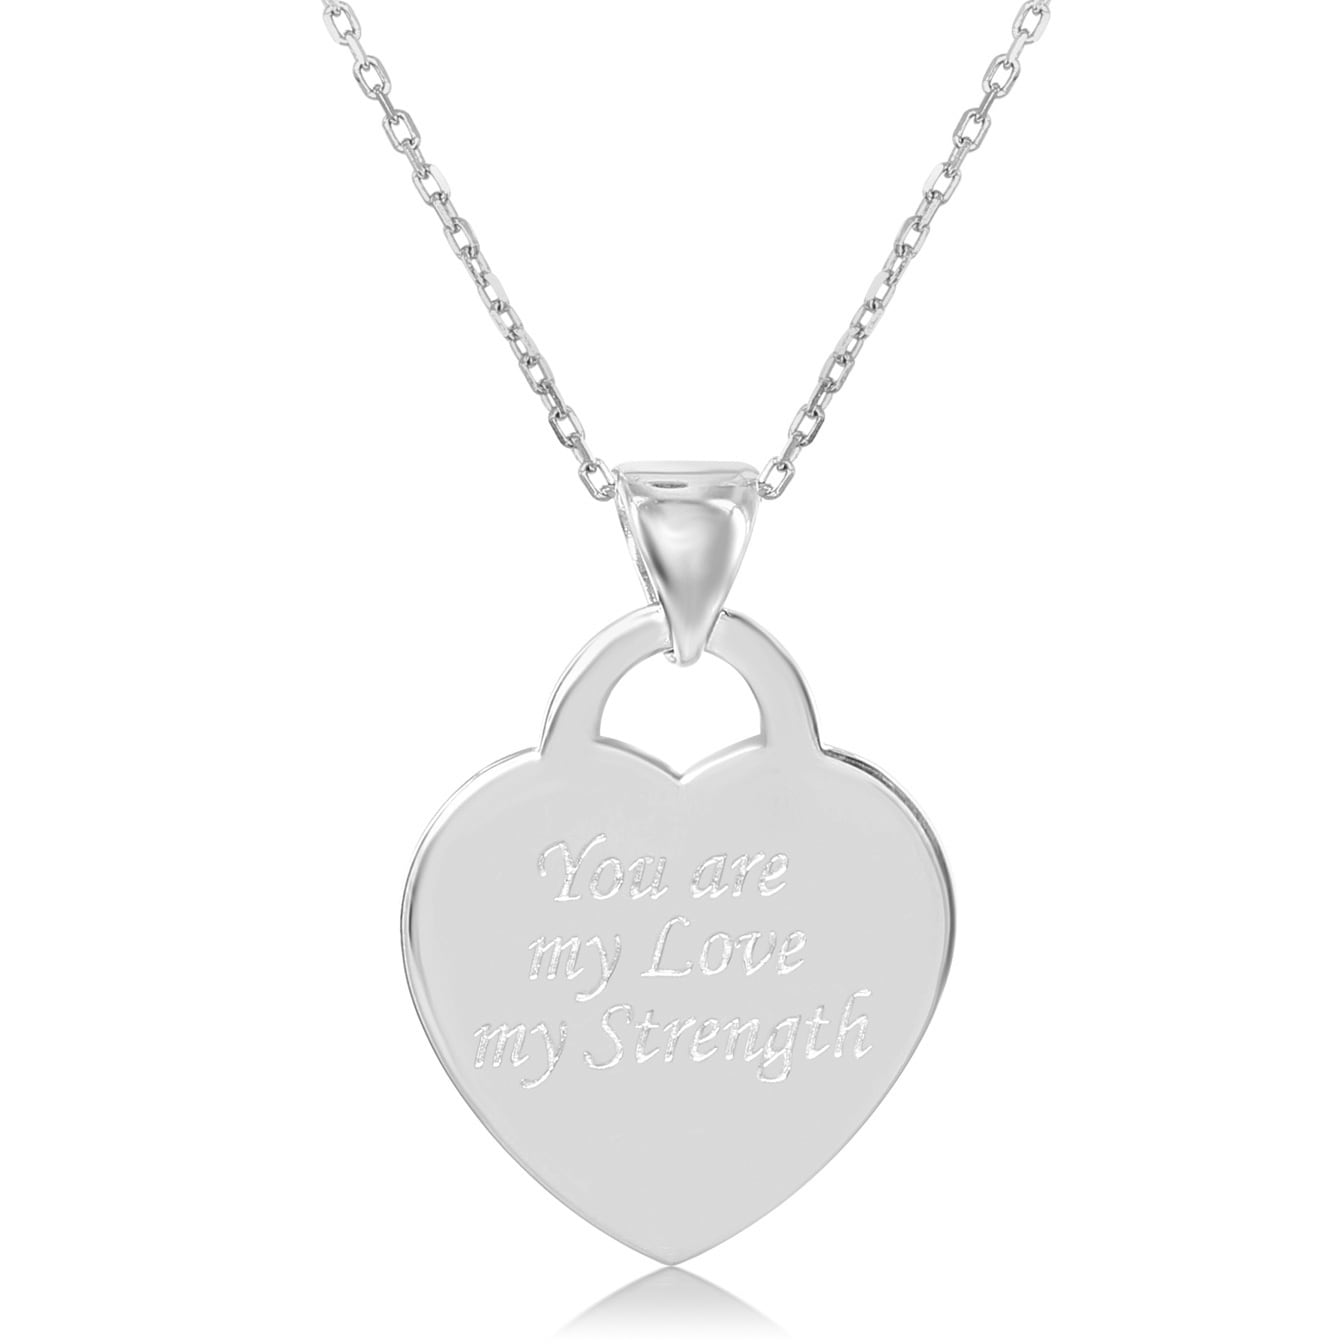 scroll sterling pendant htm necklace s women hill flat lois sm crafted hand carved heart silver p